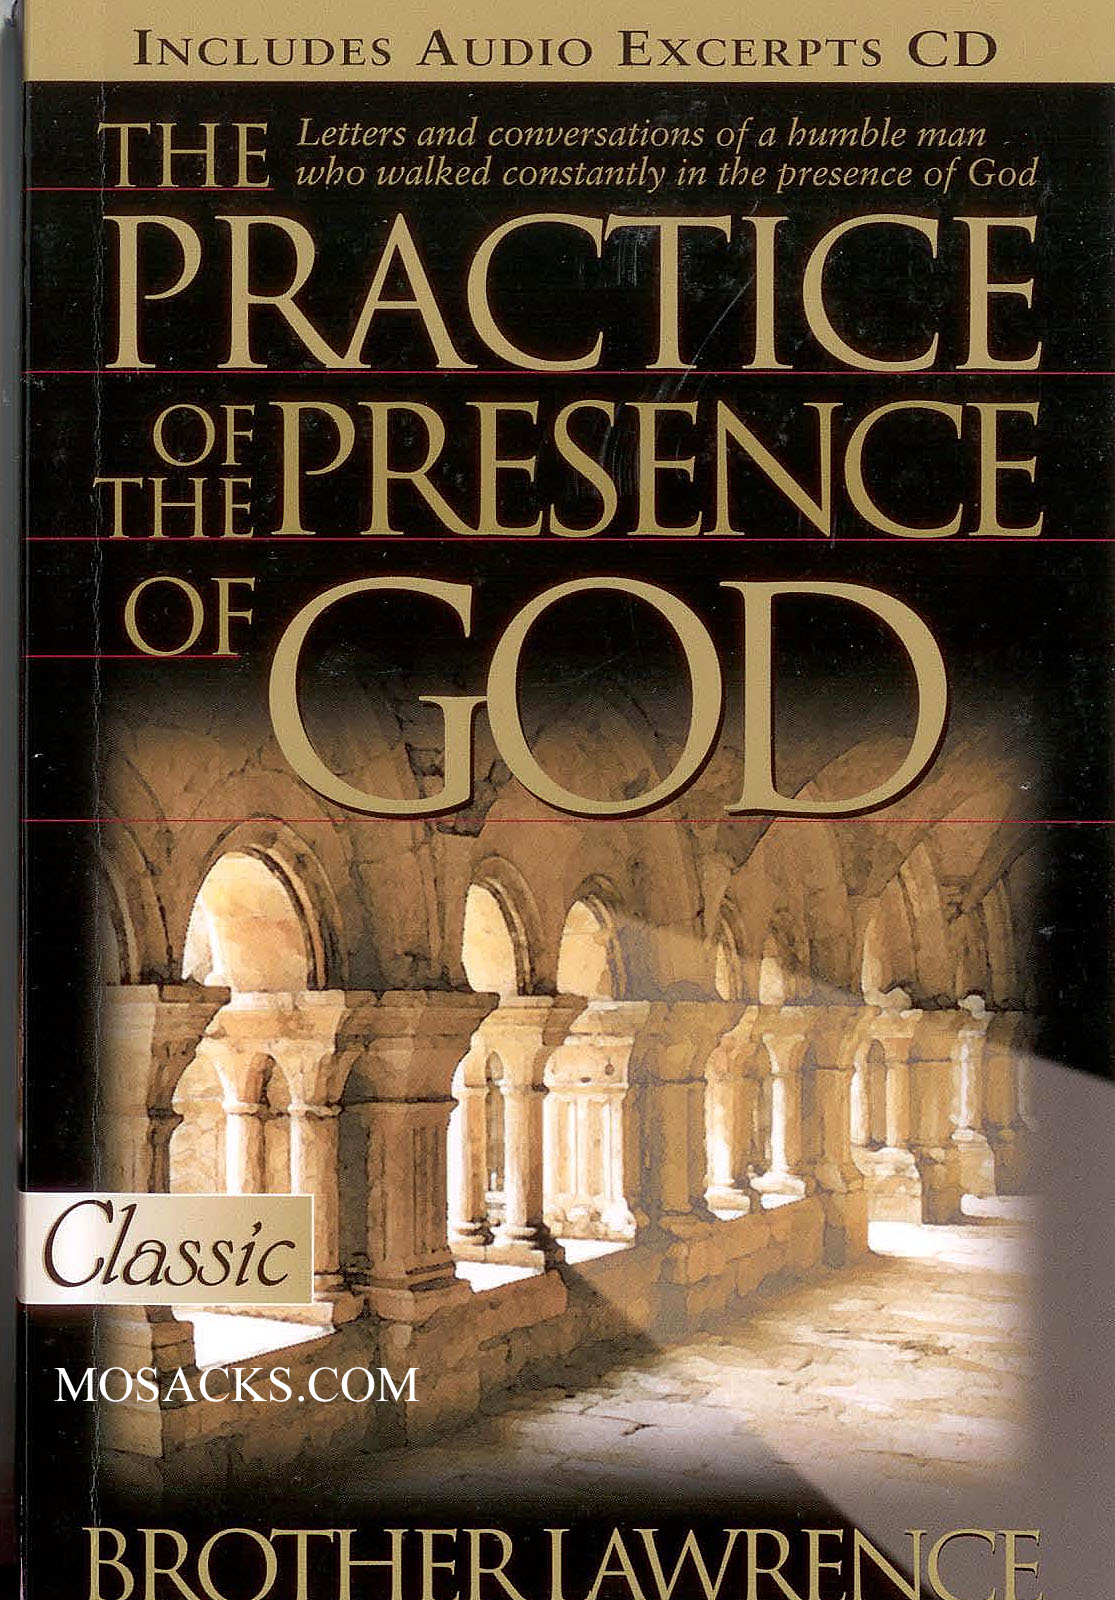 The Practice Of  The Presence God by Brother Lawrence